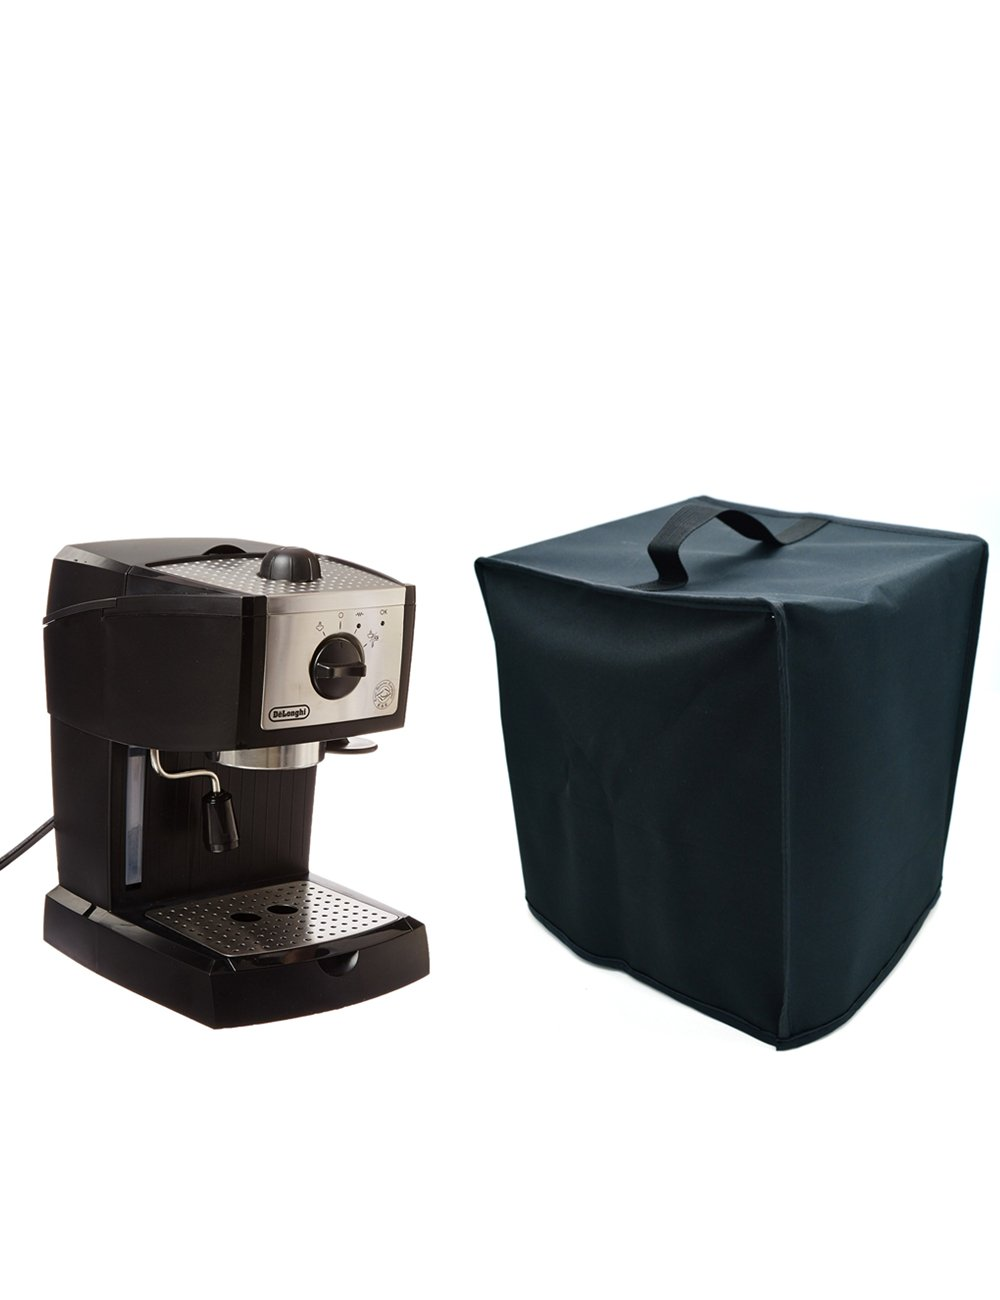 Orchidtent Coffee Maker dust Cover – 11W x 9D x 11H-Waterproof, Universal Fit- Fits EC155 15 BAR Pump Espresso and Cappuccino Maker (For De'Longhi EC155)